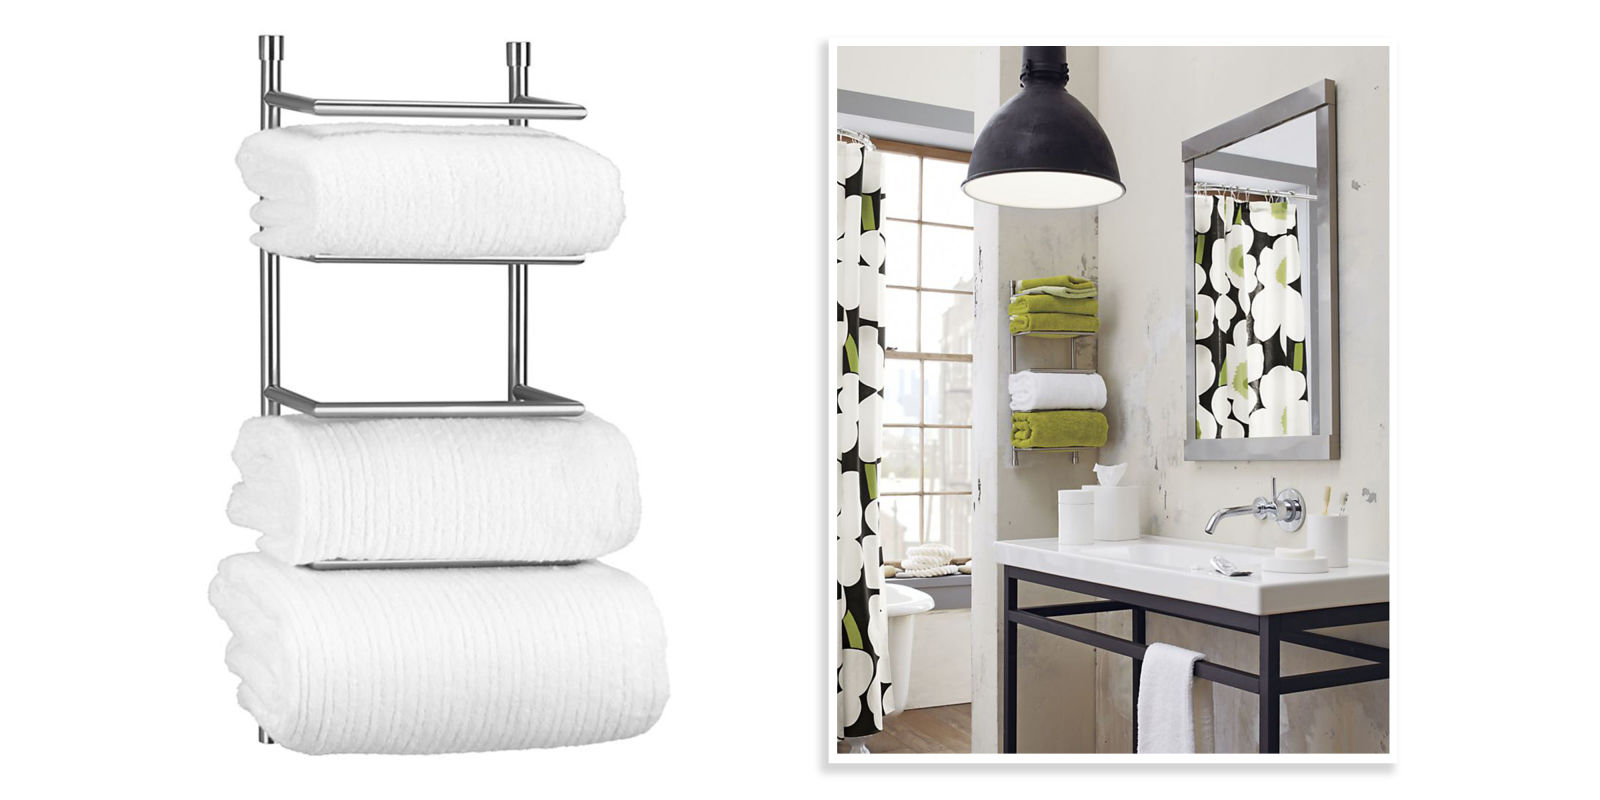 Bathroom Shelves And Towel Racks With Simple Photos In Spain ...